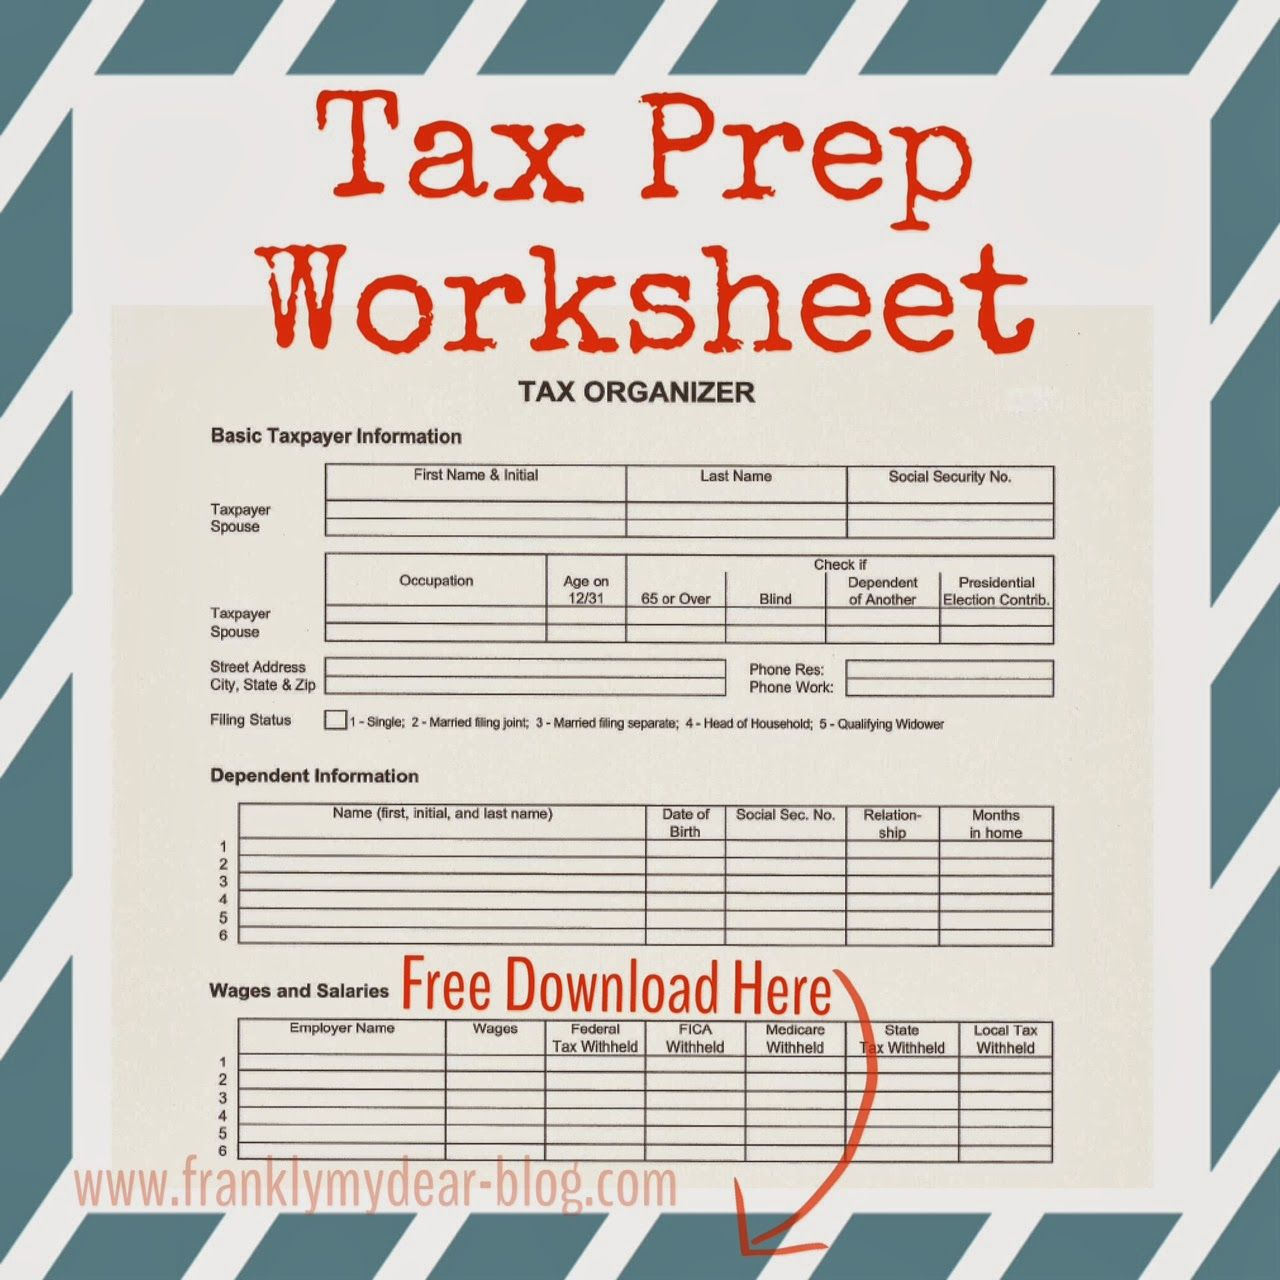 Printable Tax Prep Worksheet